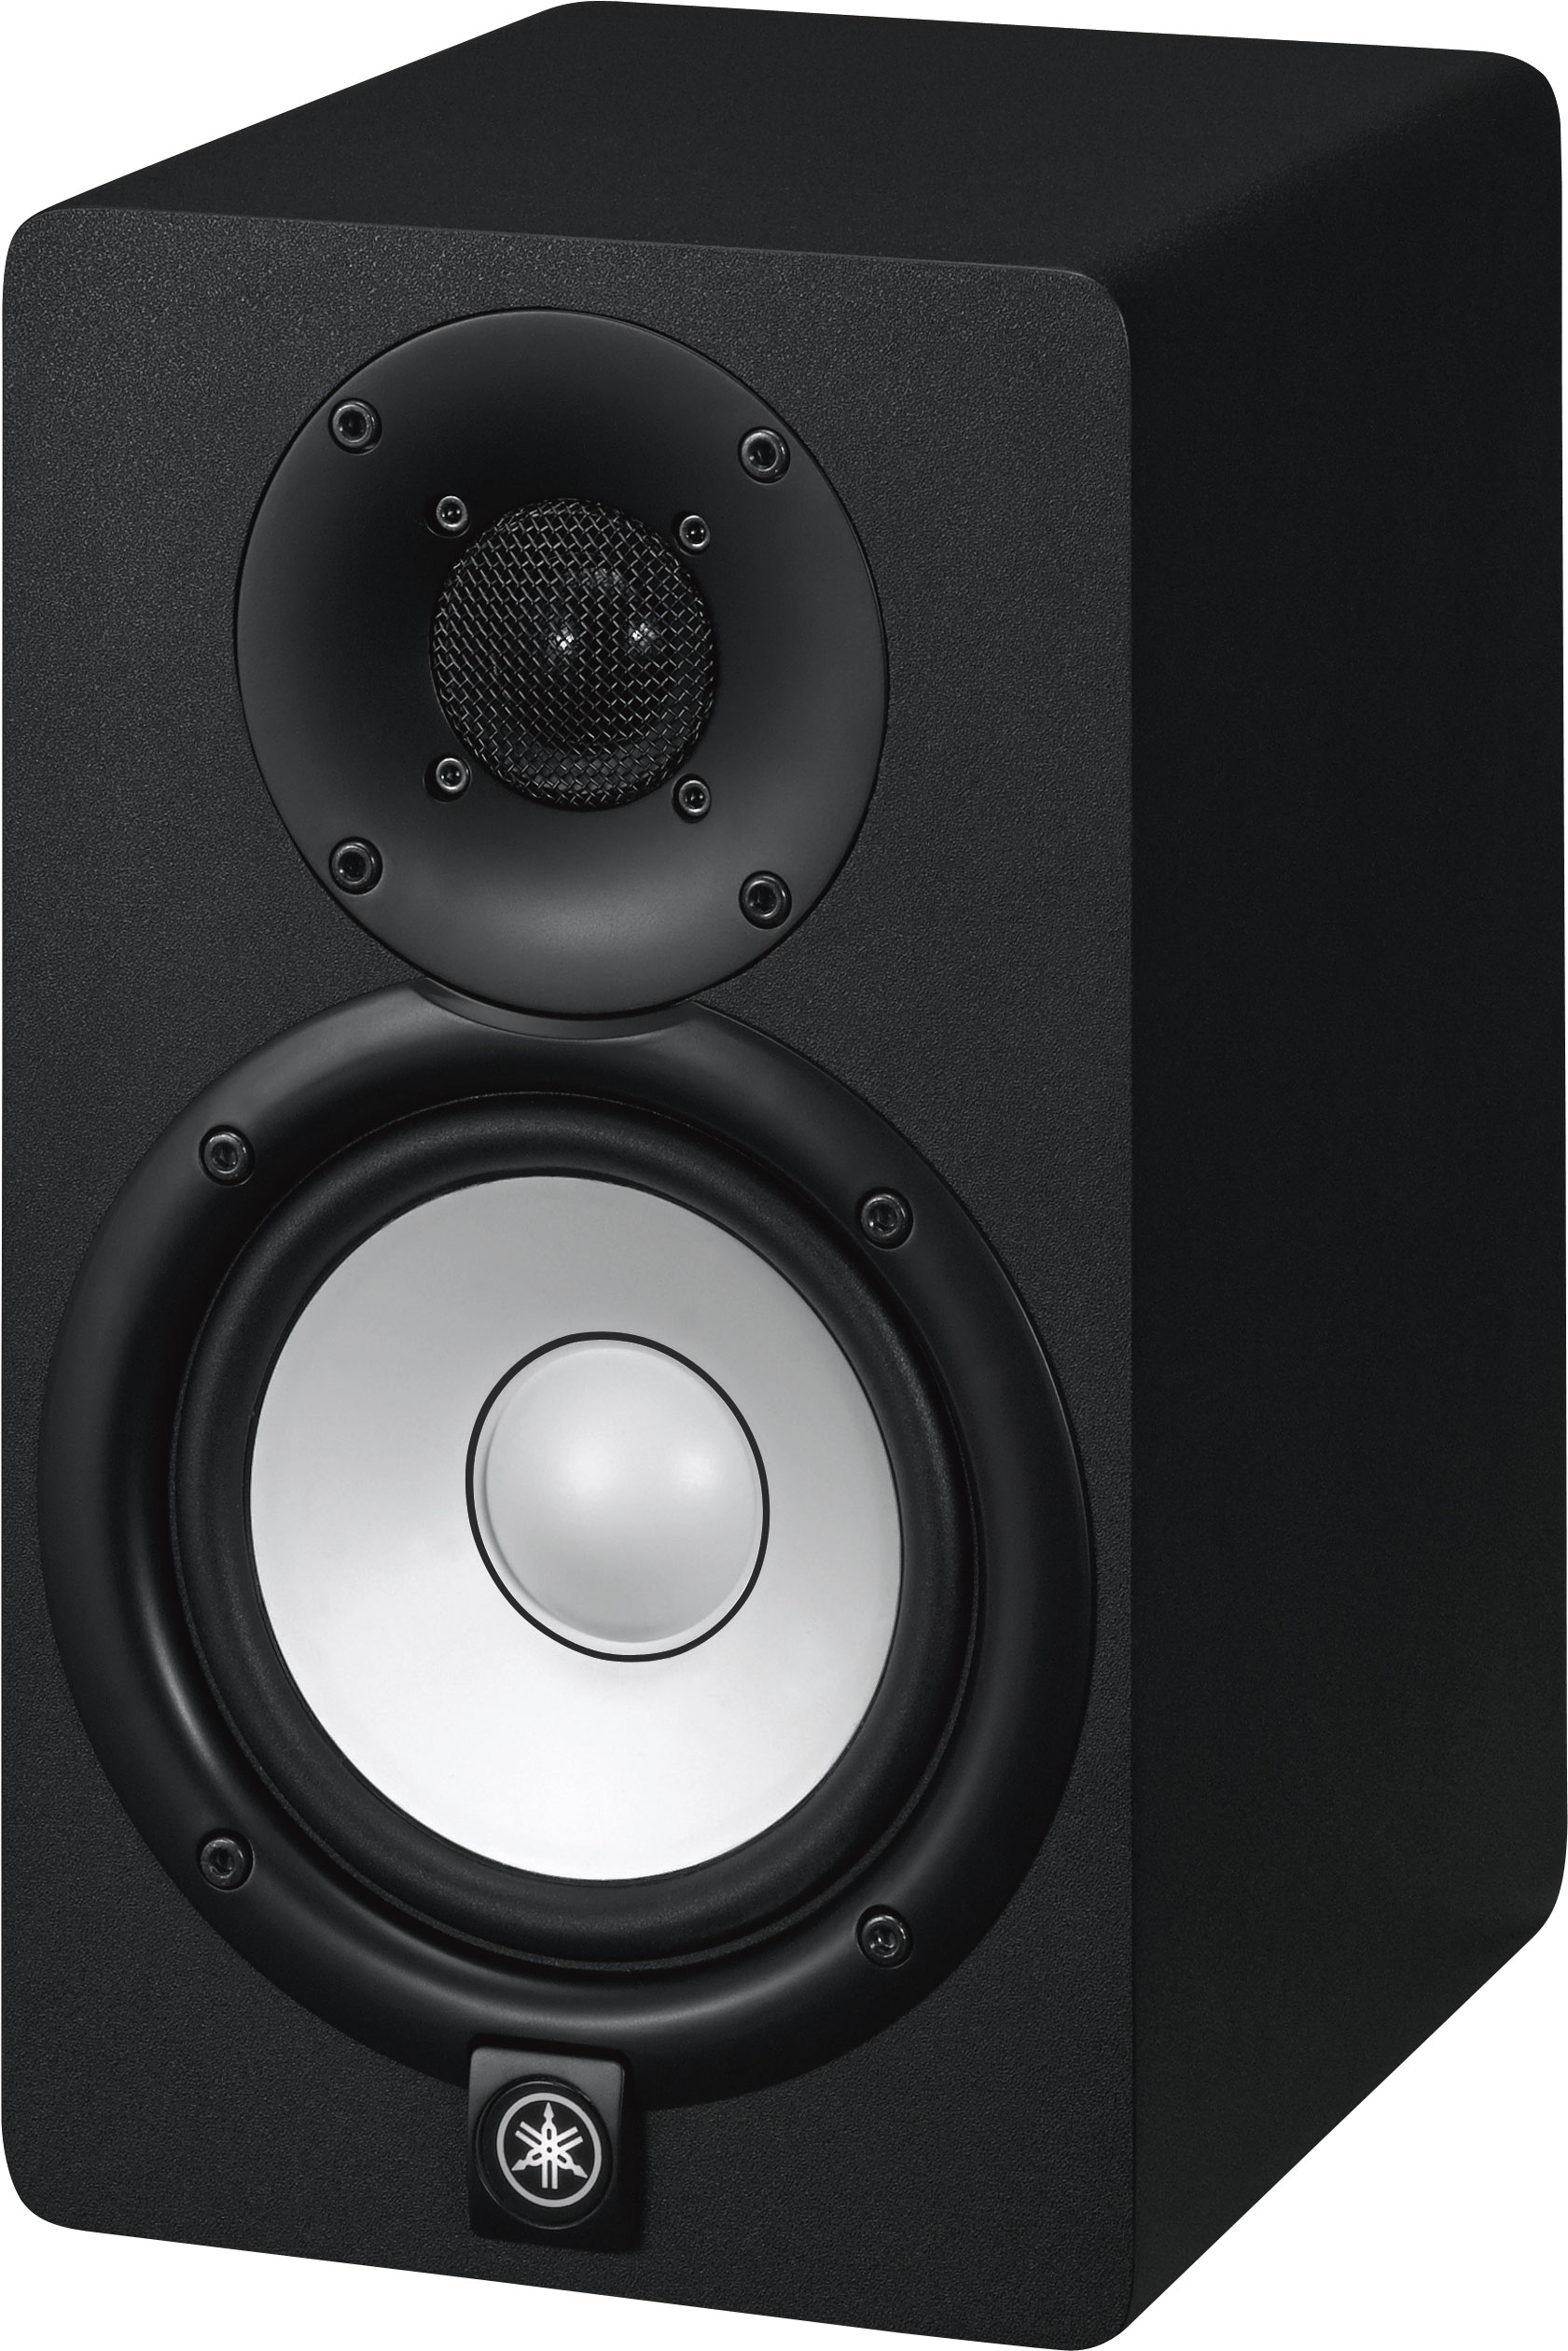 Maverick Home Recording Starter Pack Featuring the UR22 MkII Recording Pack  & Yamaha HS Speakers